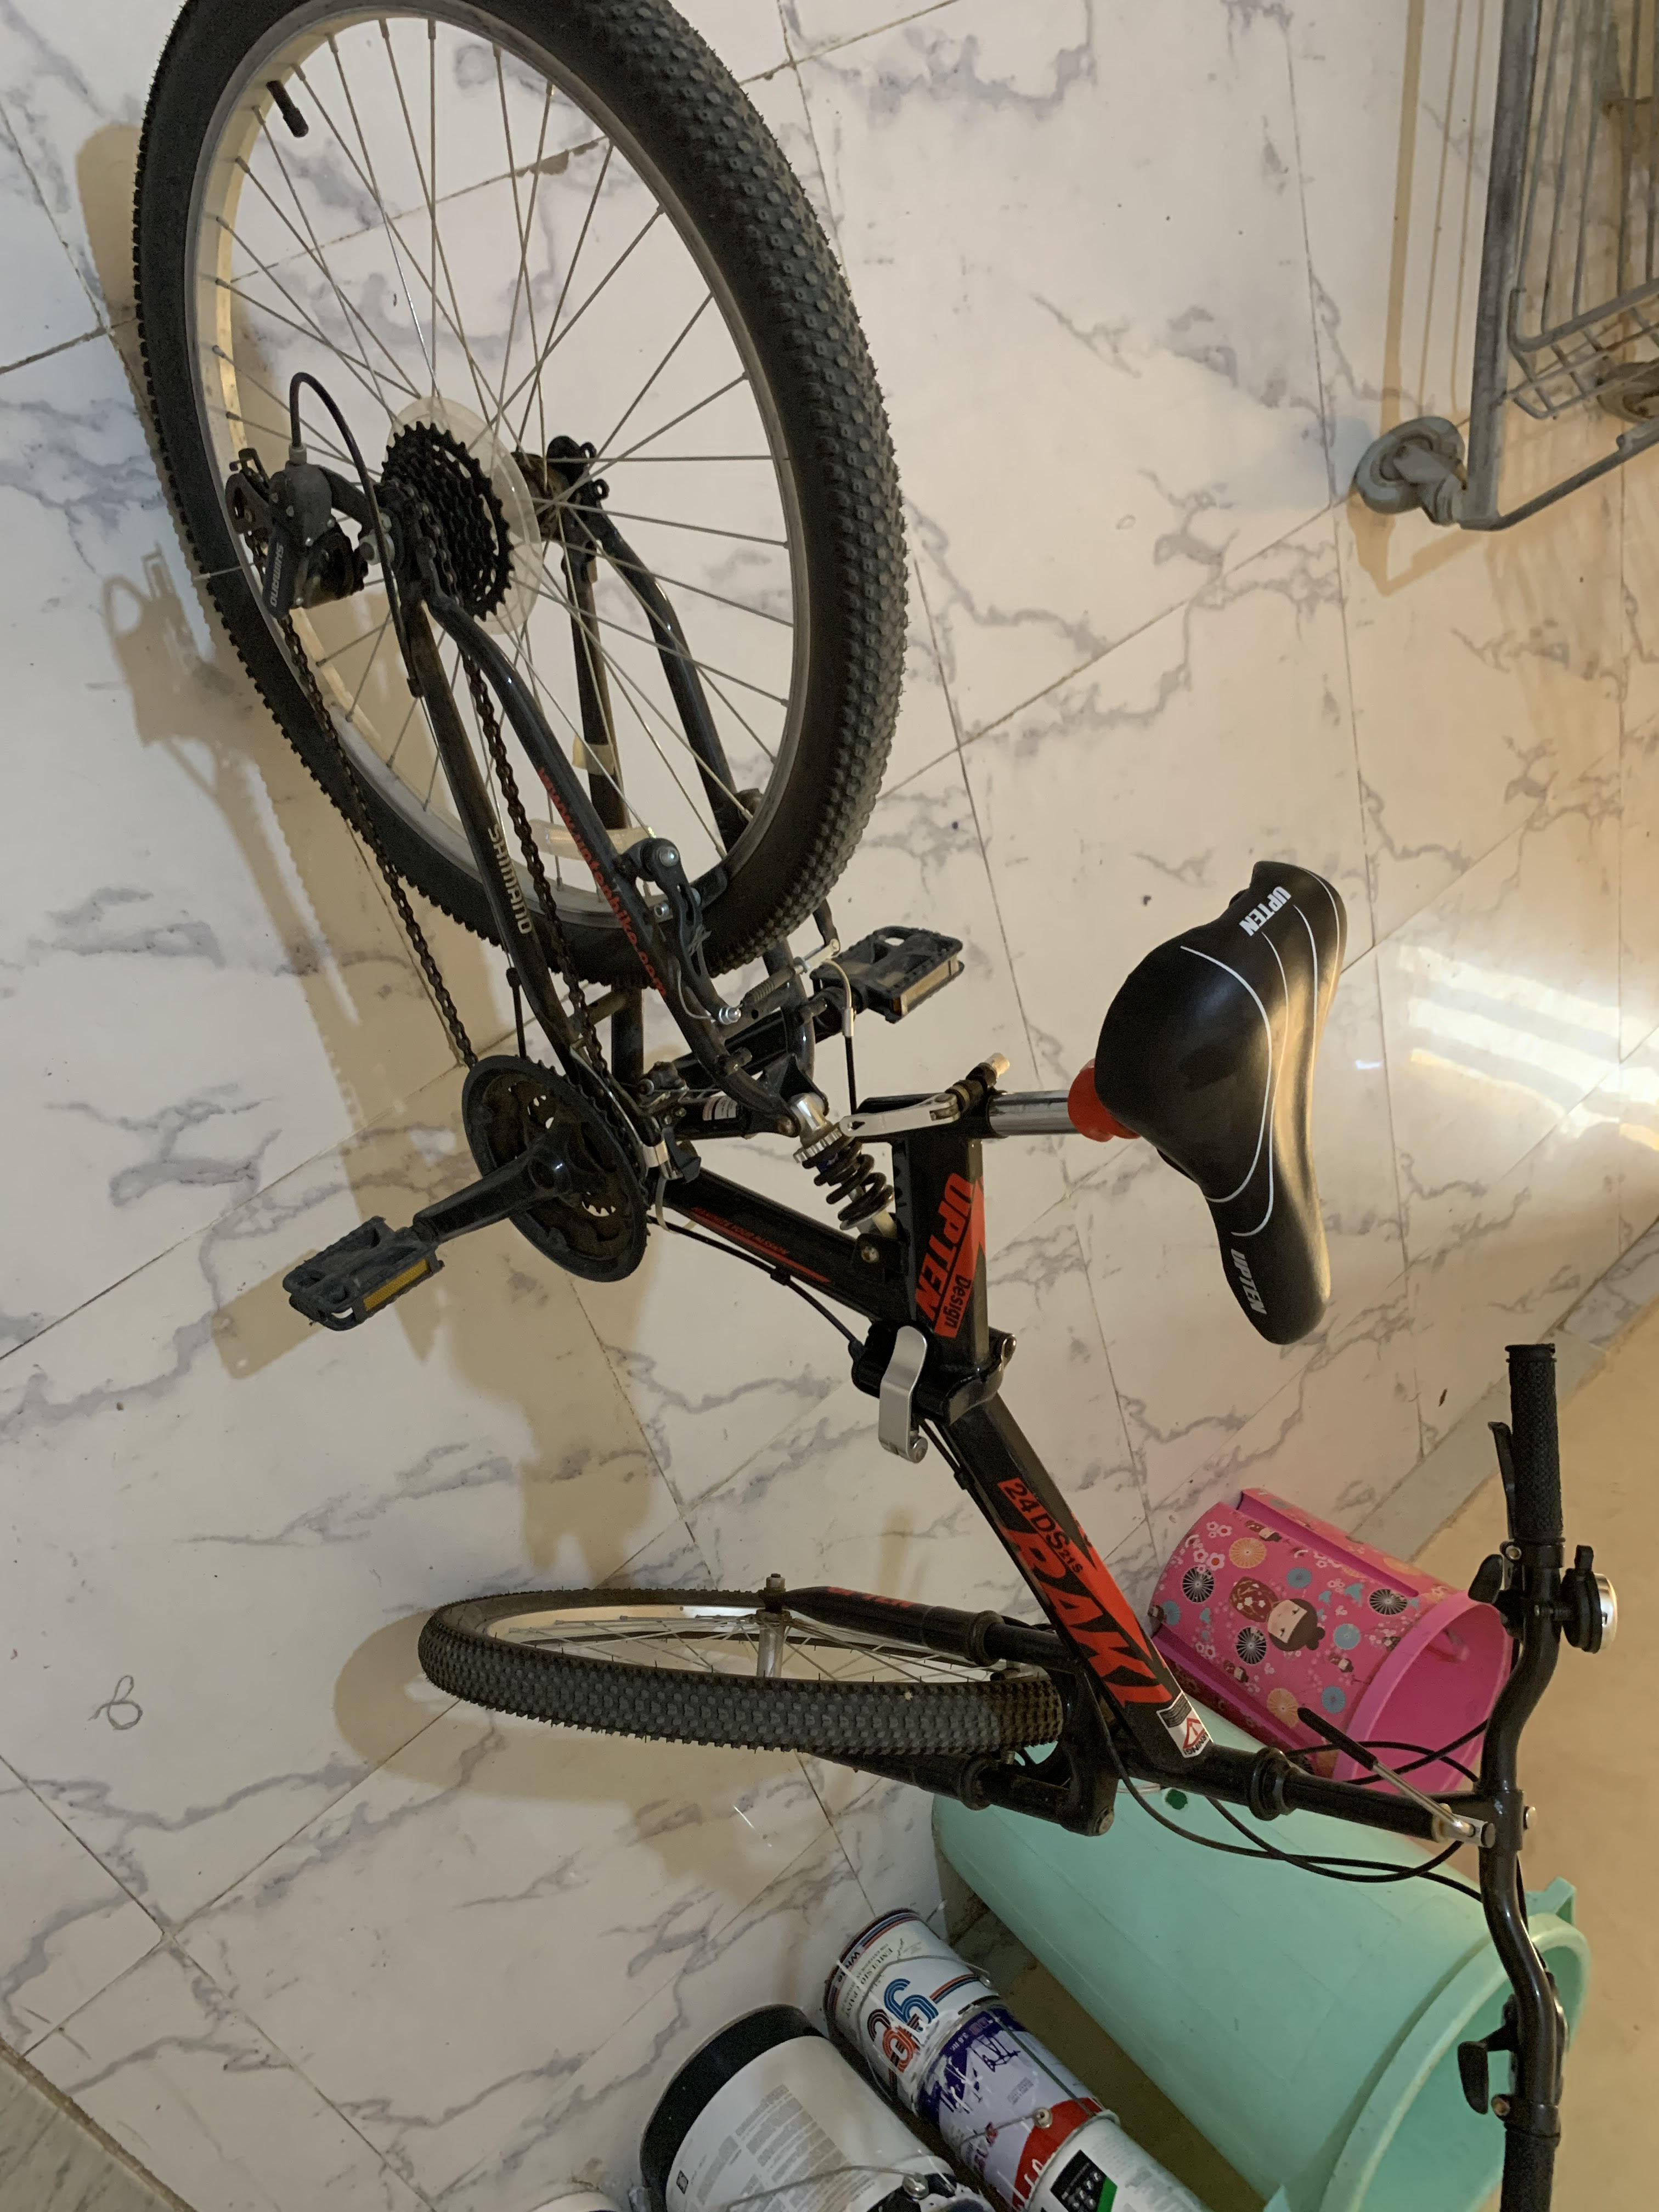 Foldable Gear Cycle For Sale In Excellent Condition